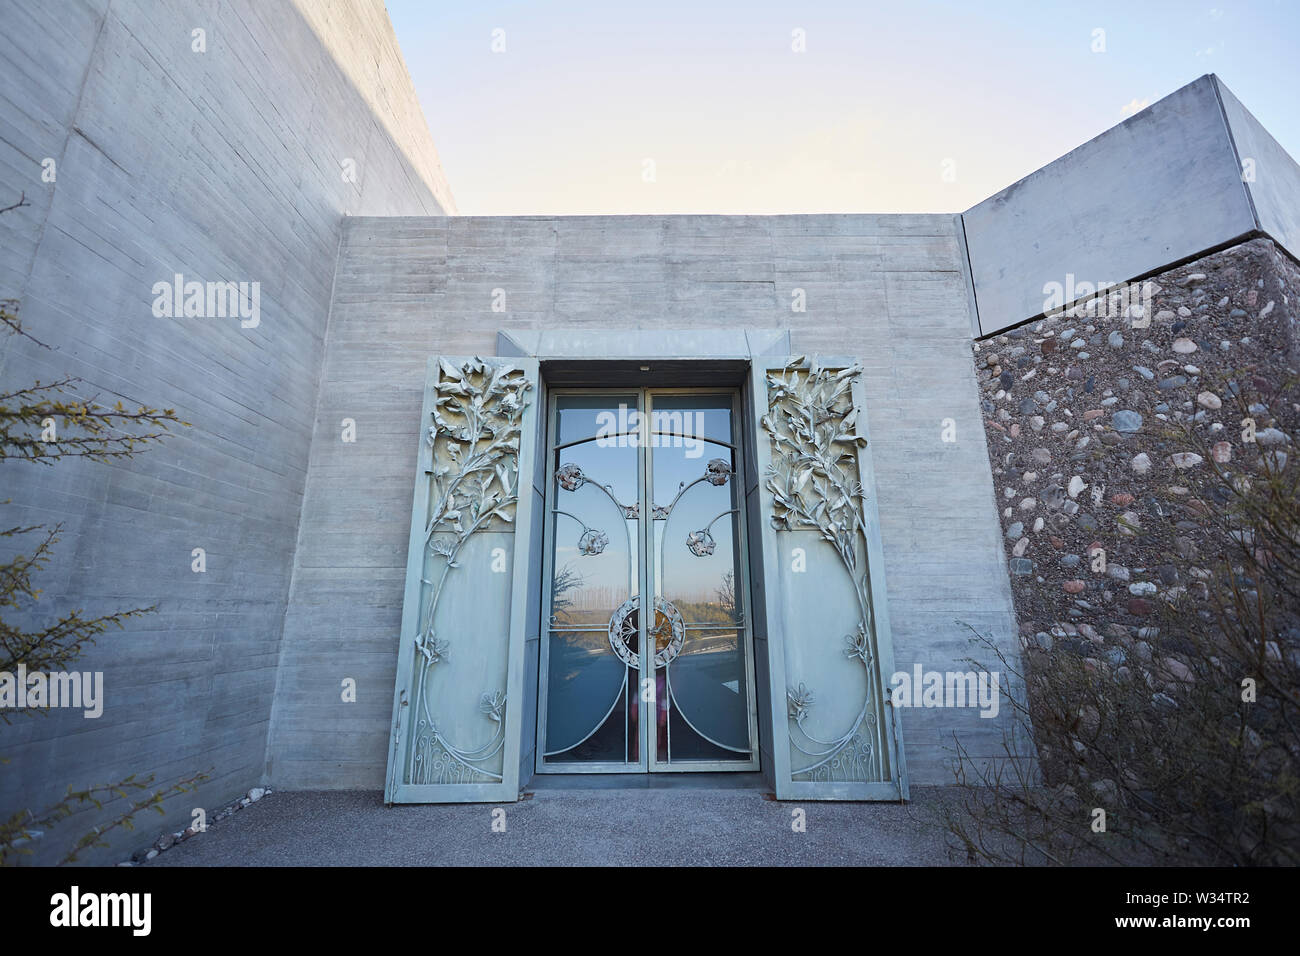 11 July 2019, Argentina, San Carlos: View on the entrance of the building of Piedra Infinita. The Argentinian winery Piedra Infinita of the brand Zuccardi, was awarded by the World's Best Vineyards Academy as the best winery and winery in the world. This award recognizes the best 50 wineries in the world, based on the experience offered to the visitor. Photo: Marcelo Aguilar/dpa - Stock Image